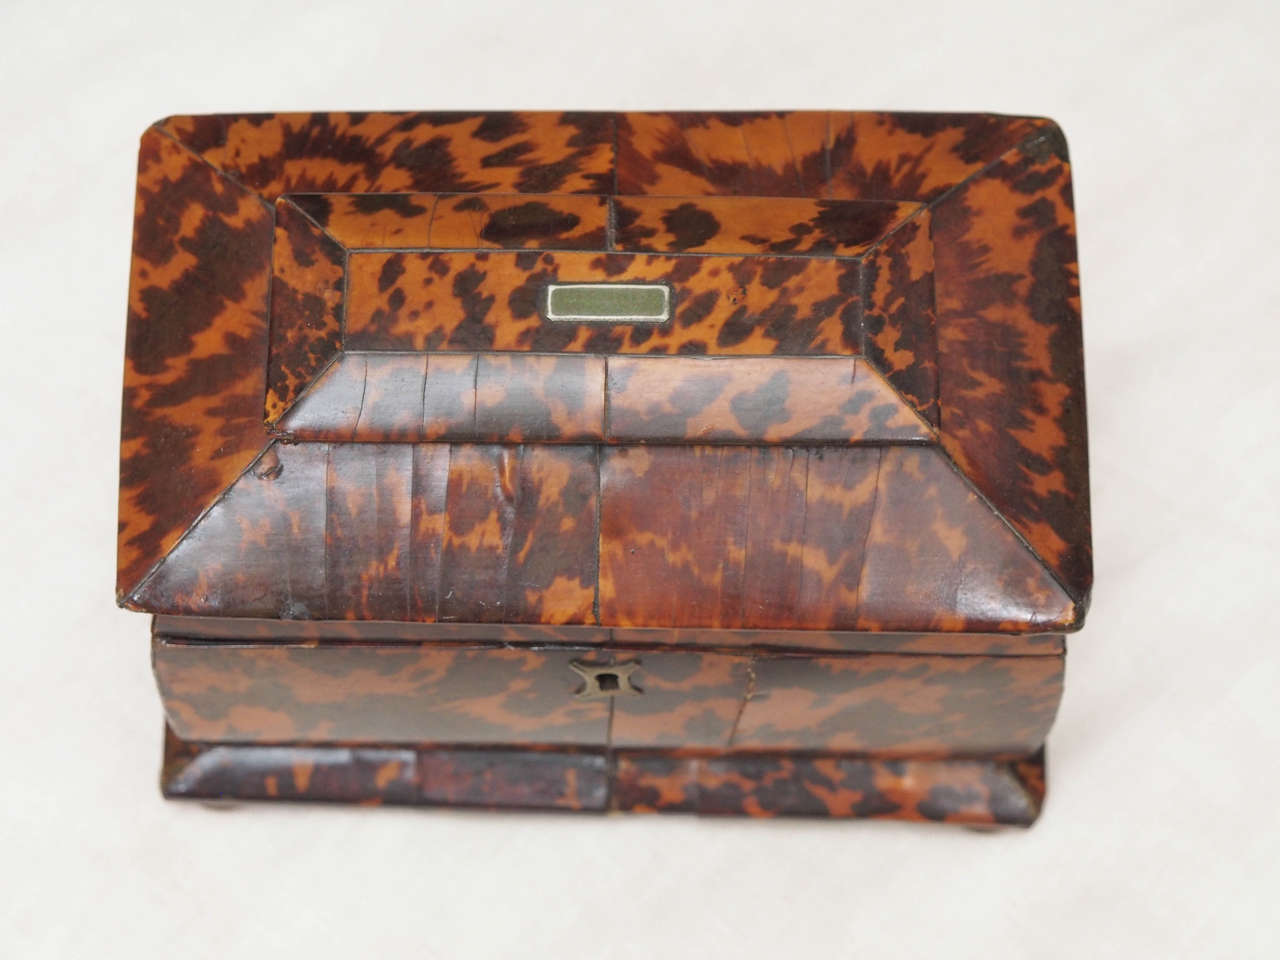 English Regency Tortoishell Tea Caddy In Good Condition For Sale In New Orleans, LA